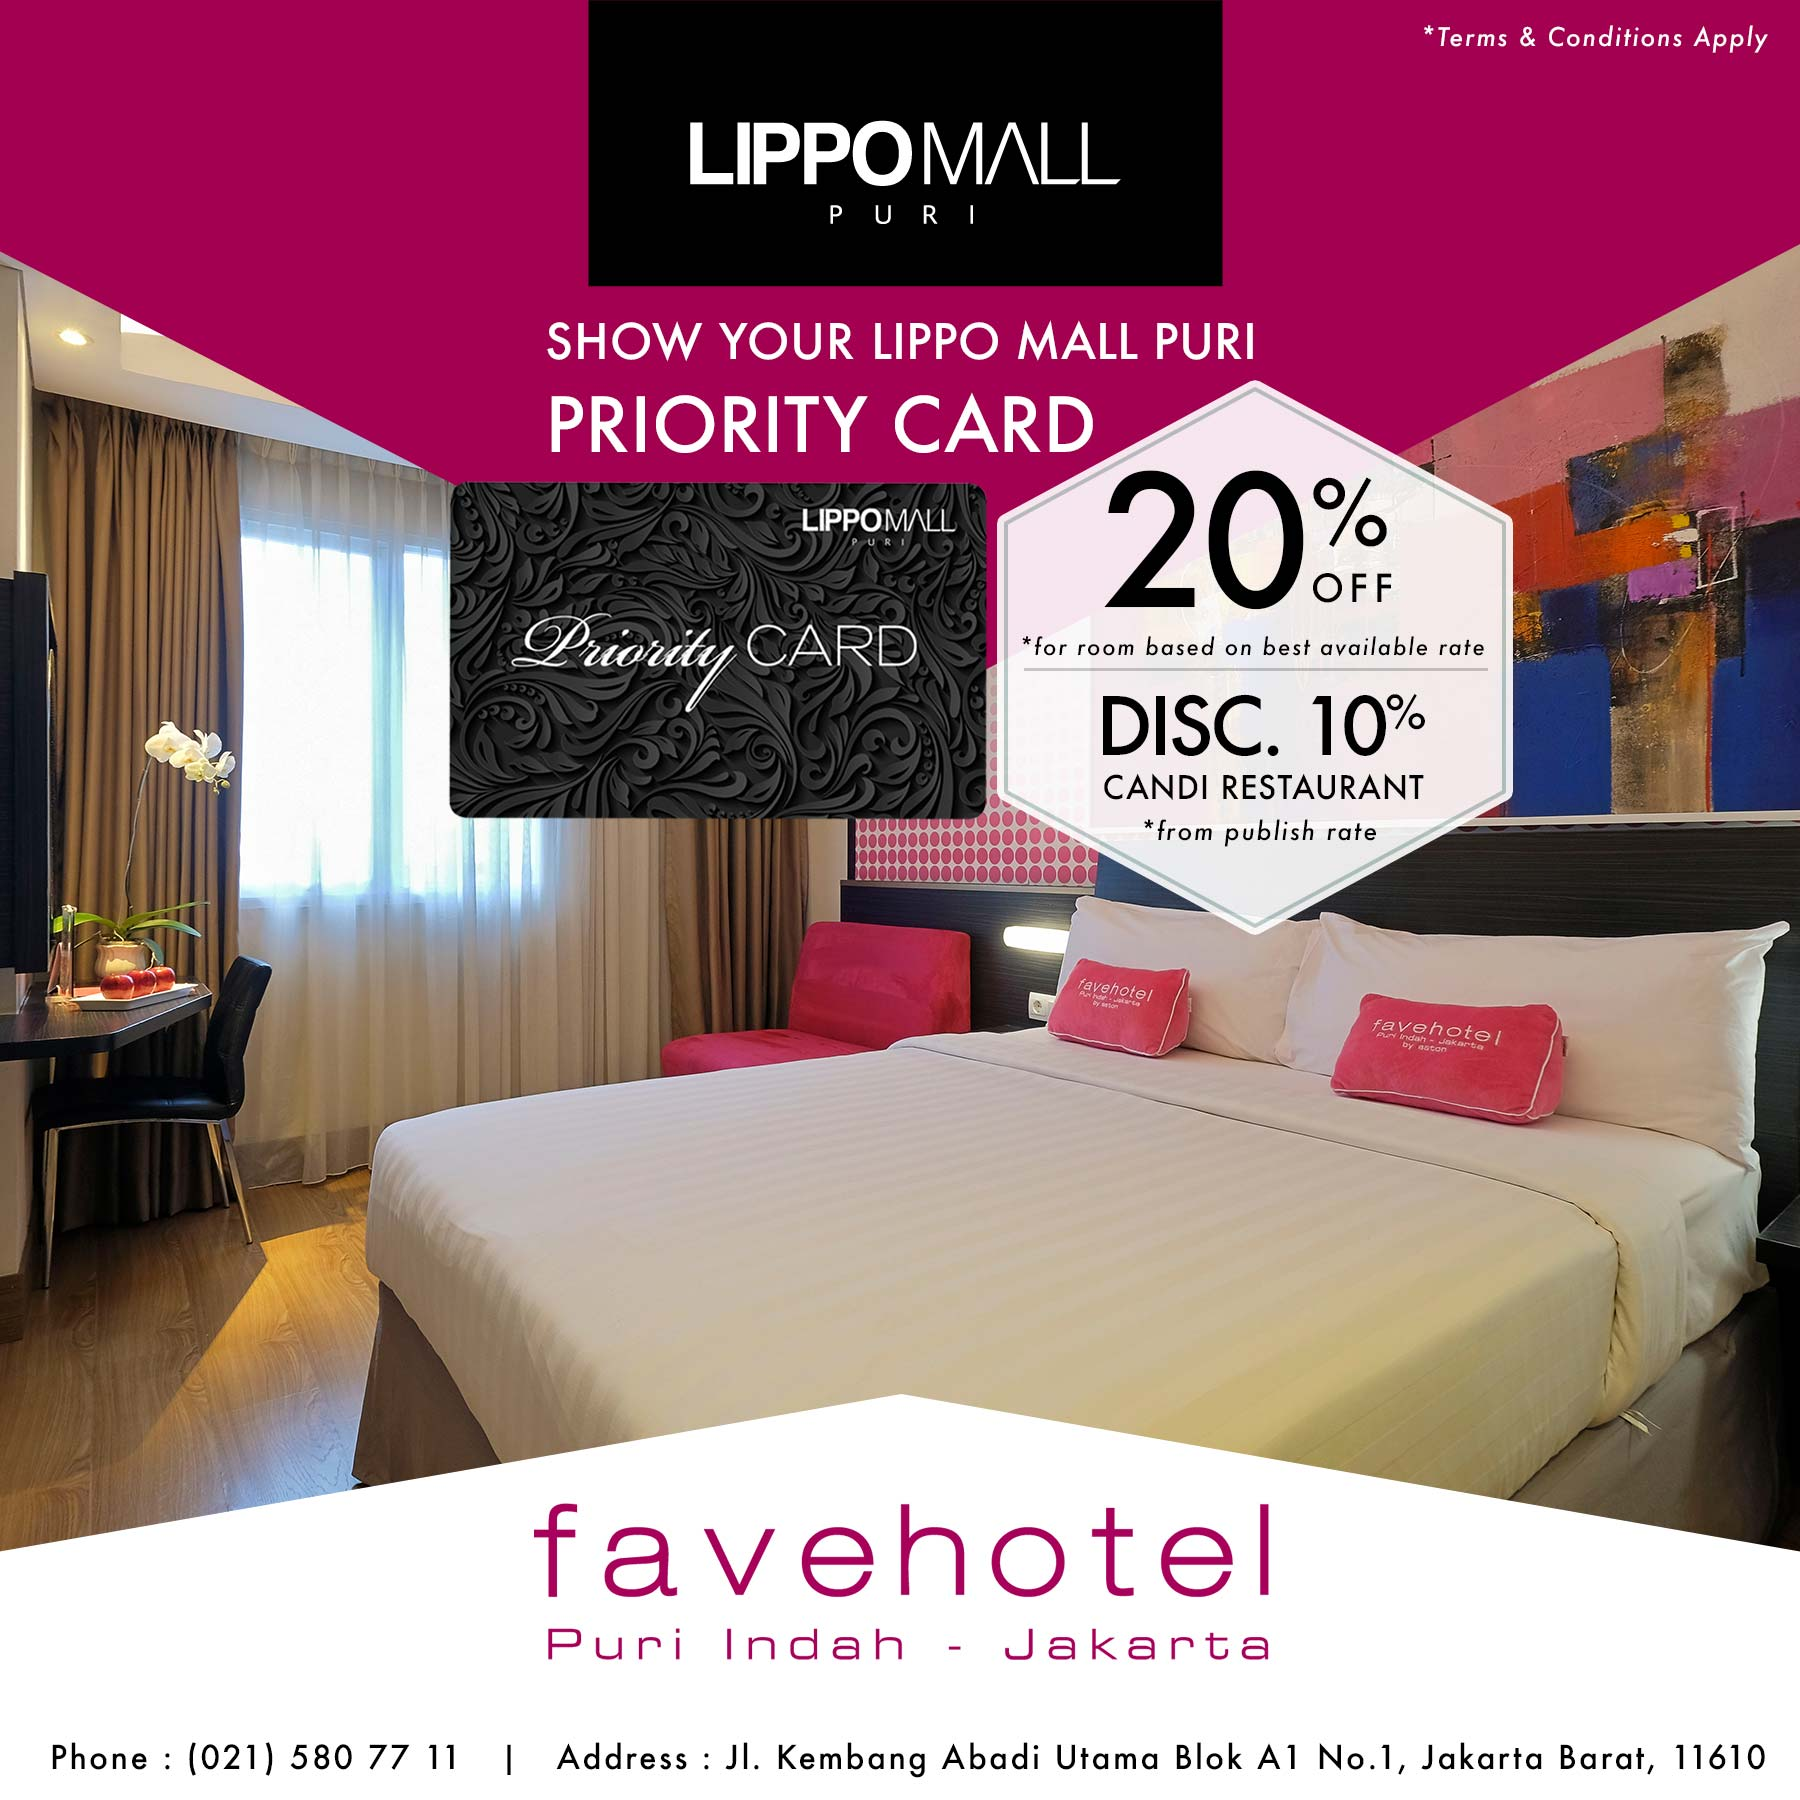 hotel fave promo in lippo mall puri st. moritz with priority card